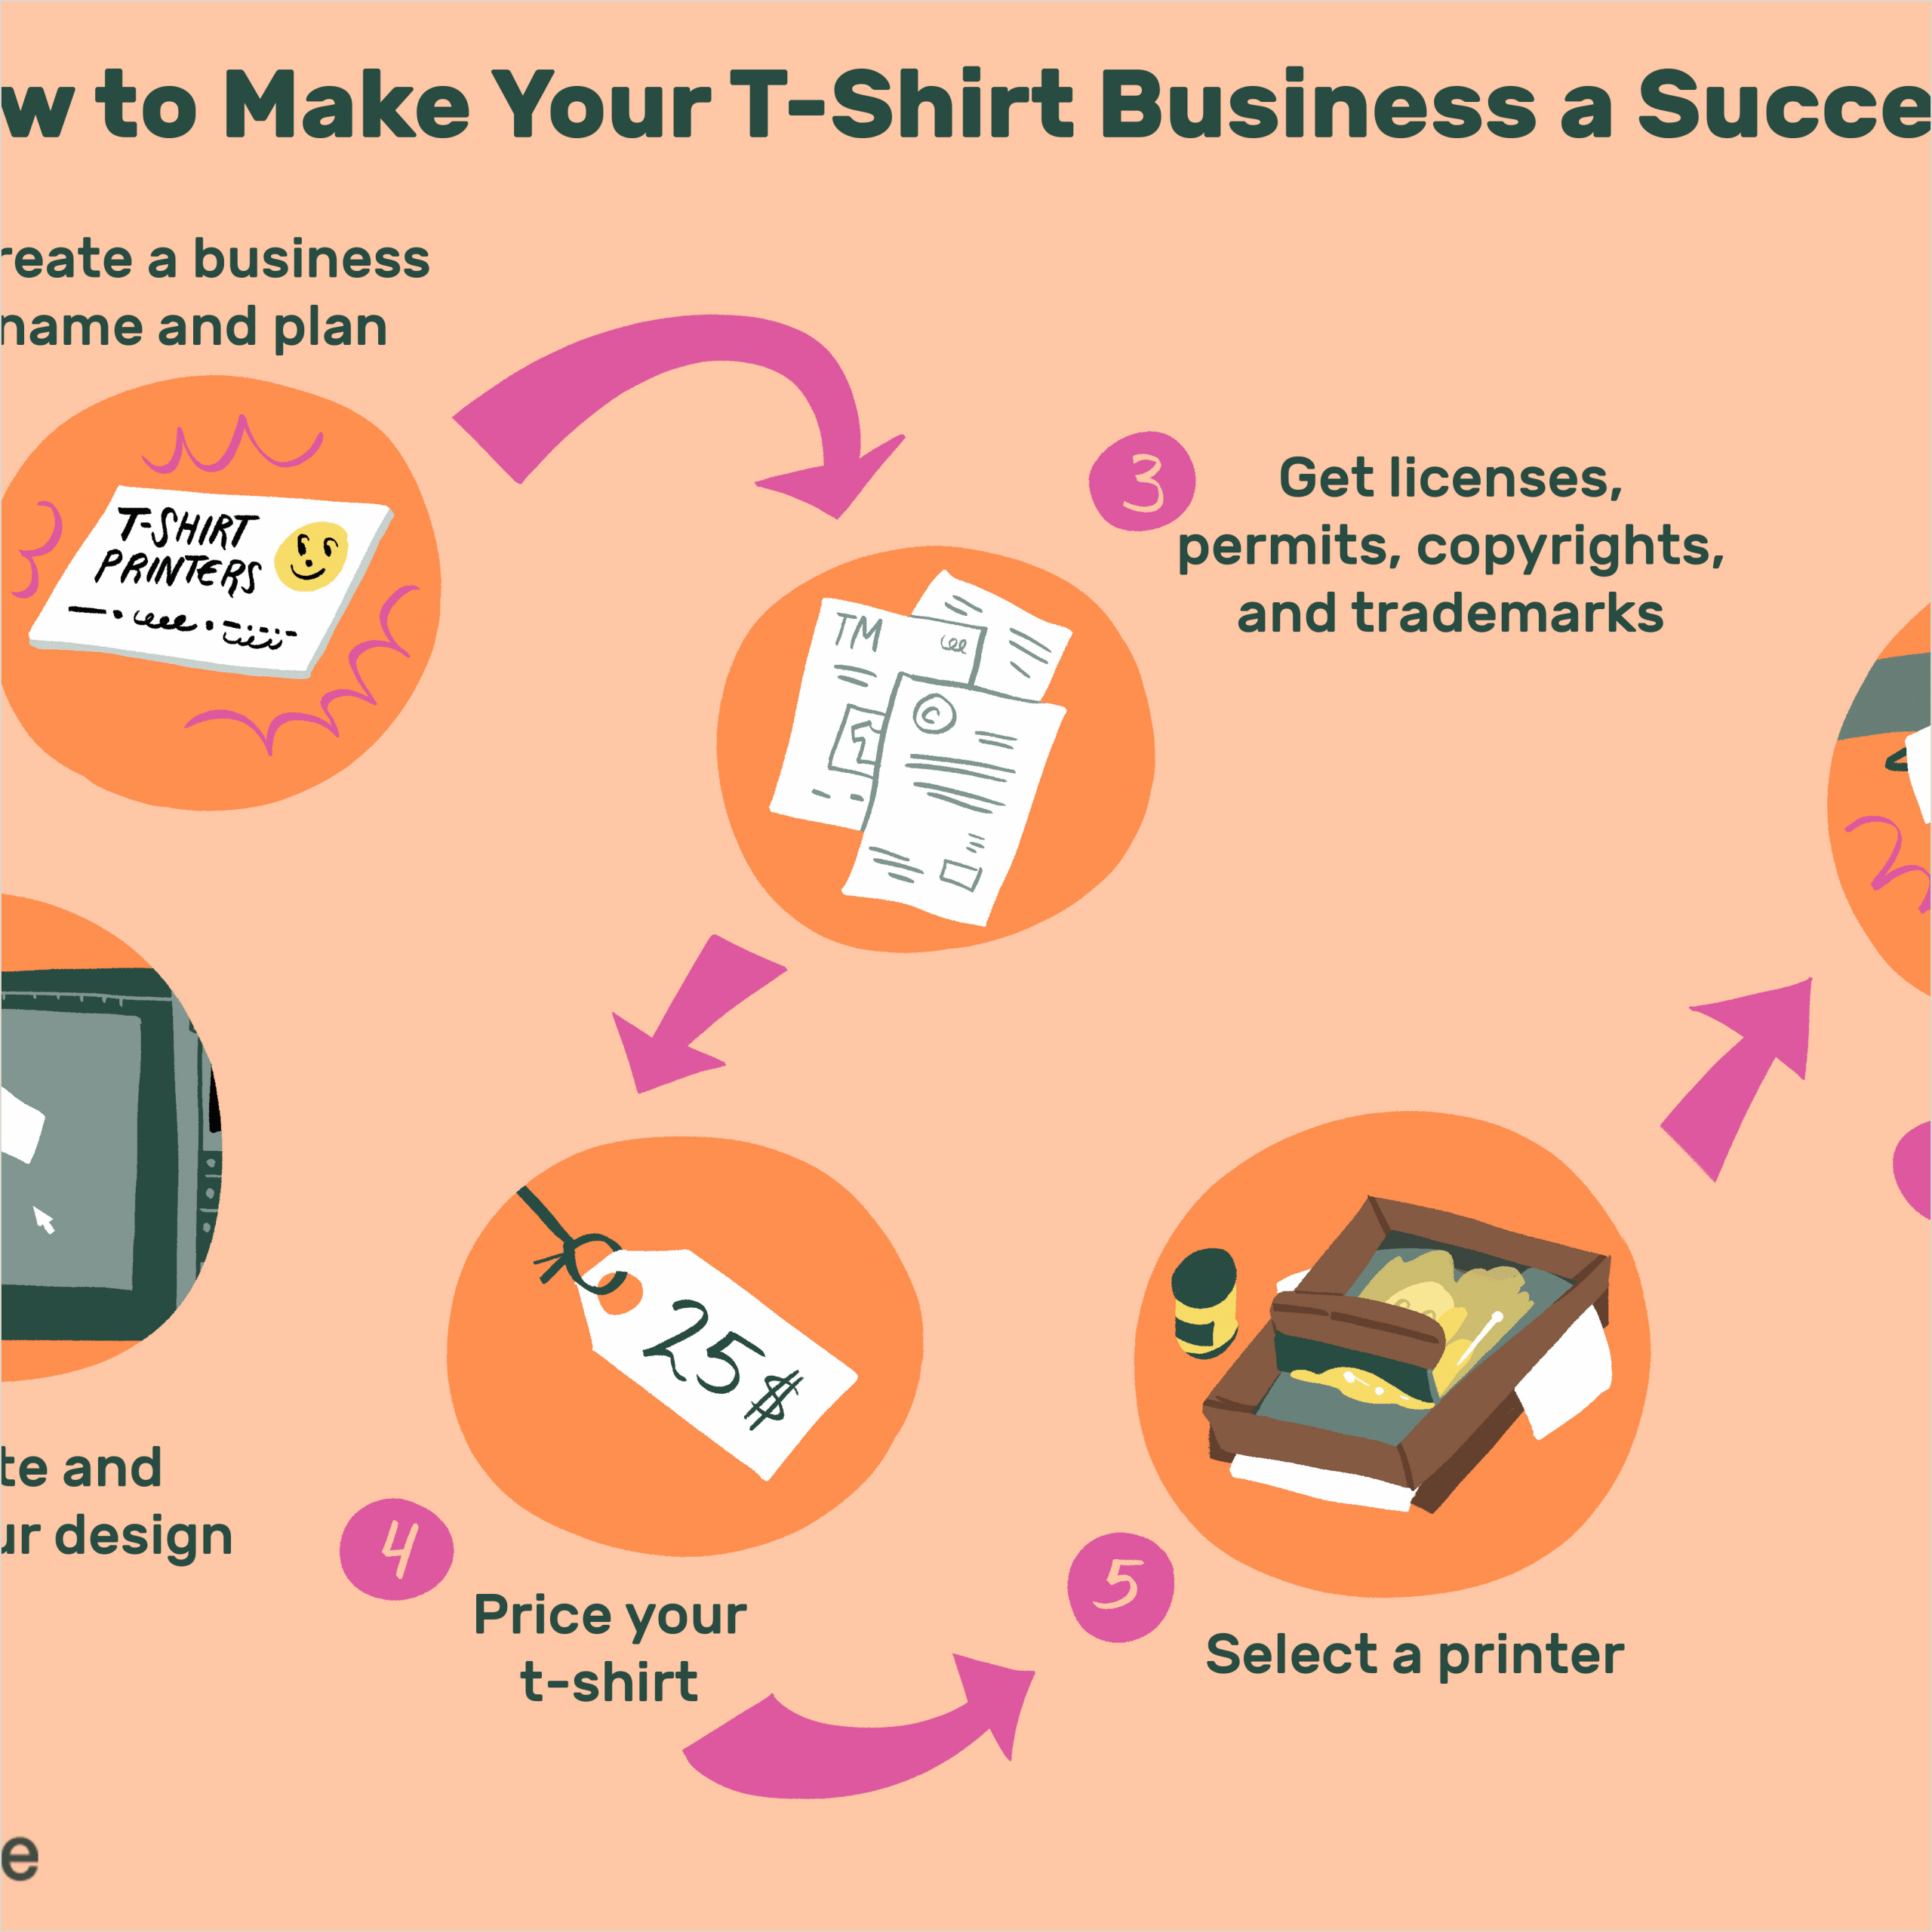 Capital Ones Best Business Cards How To Start A Home Based T Shirt Business